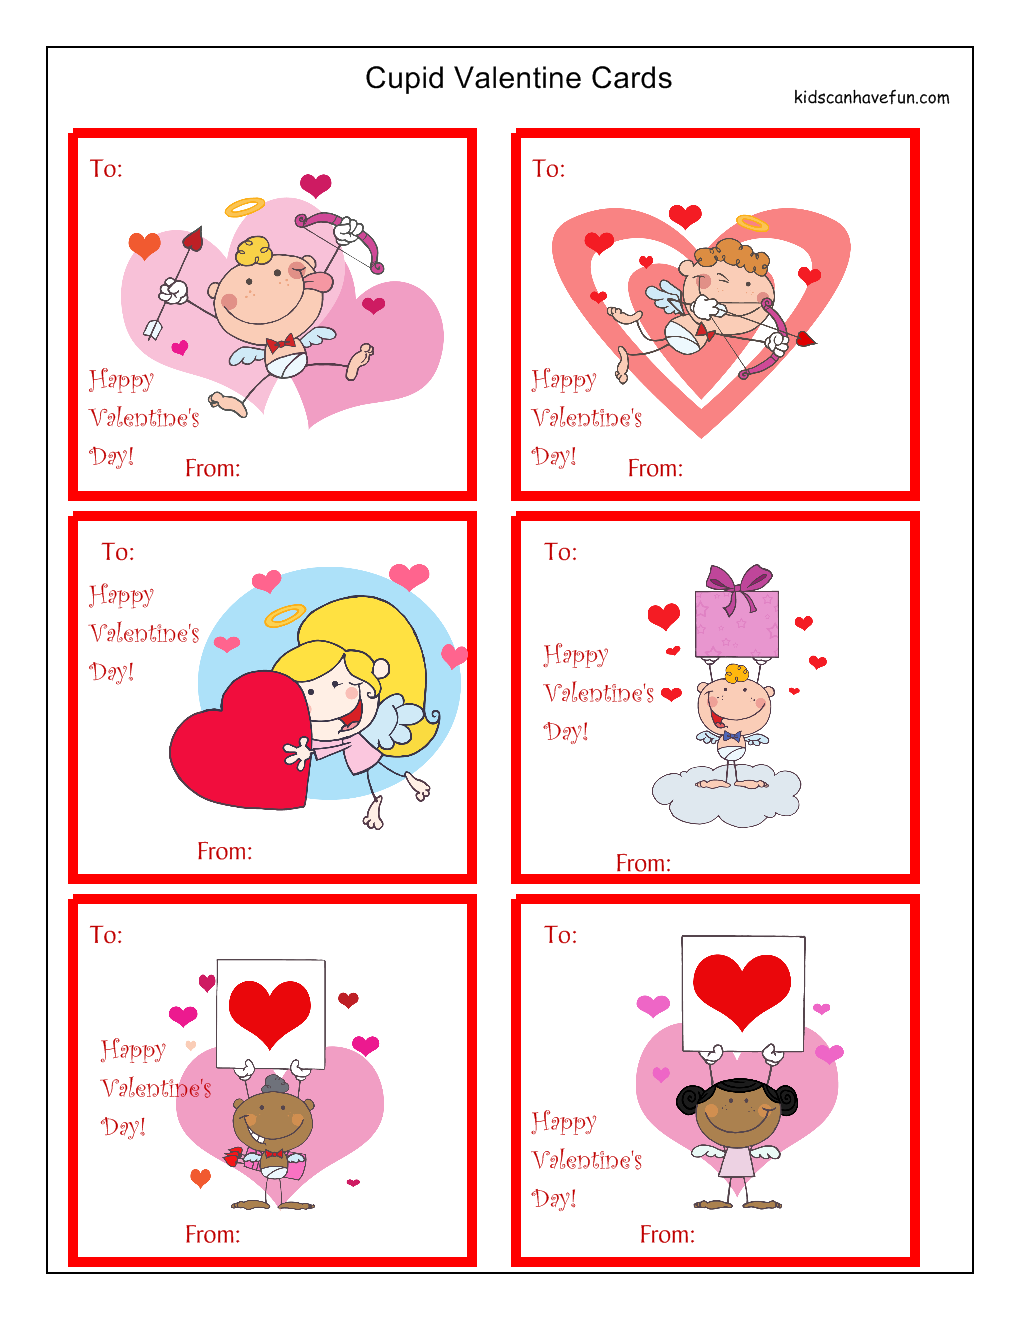 Cupid Cutouts Toddlers